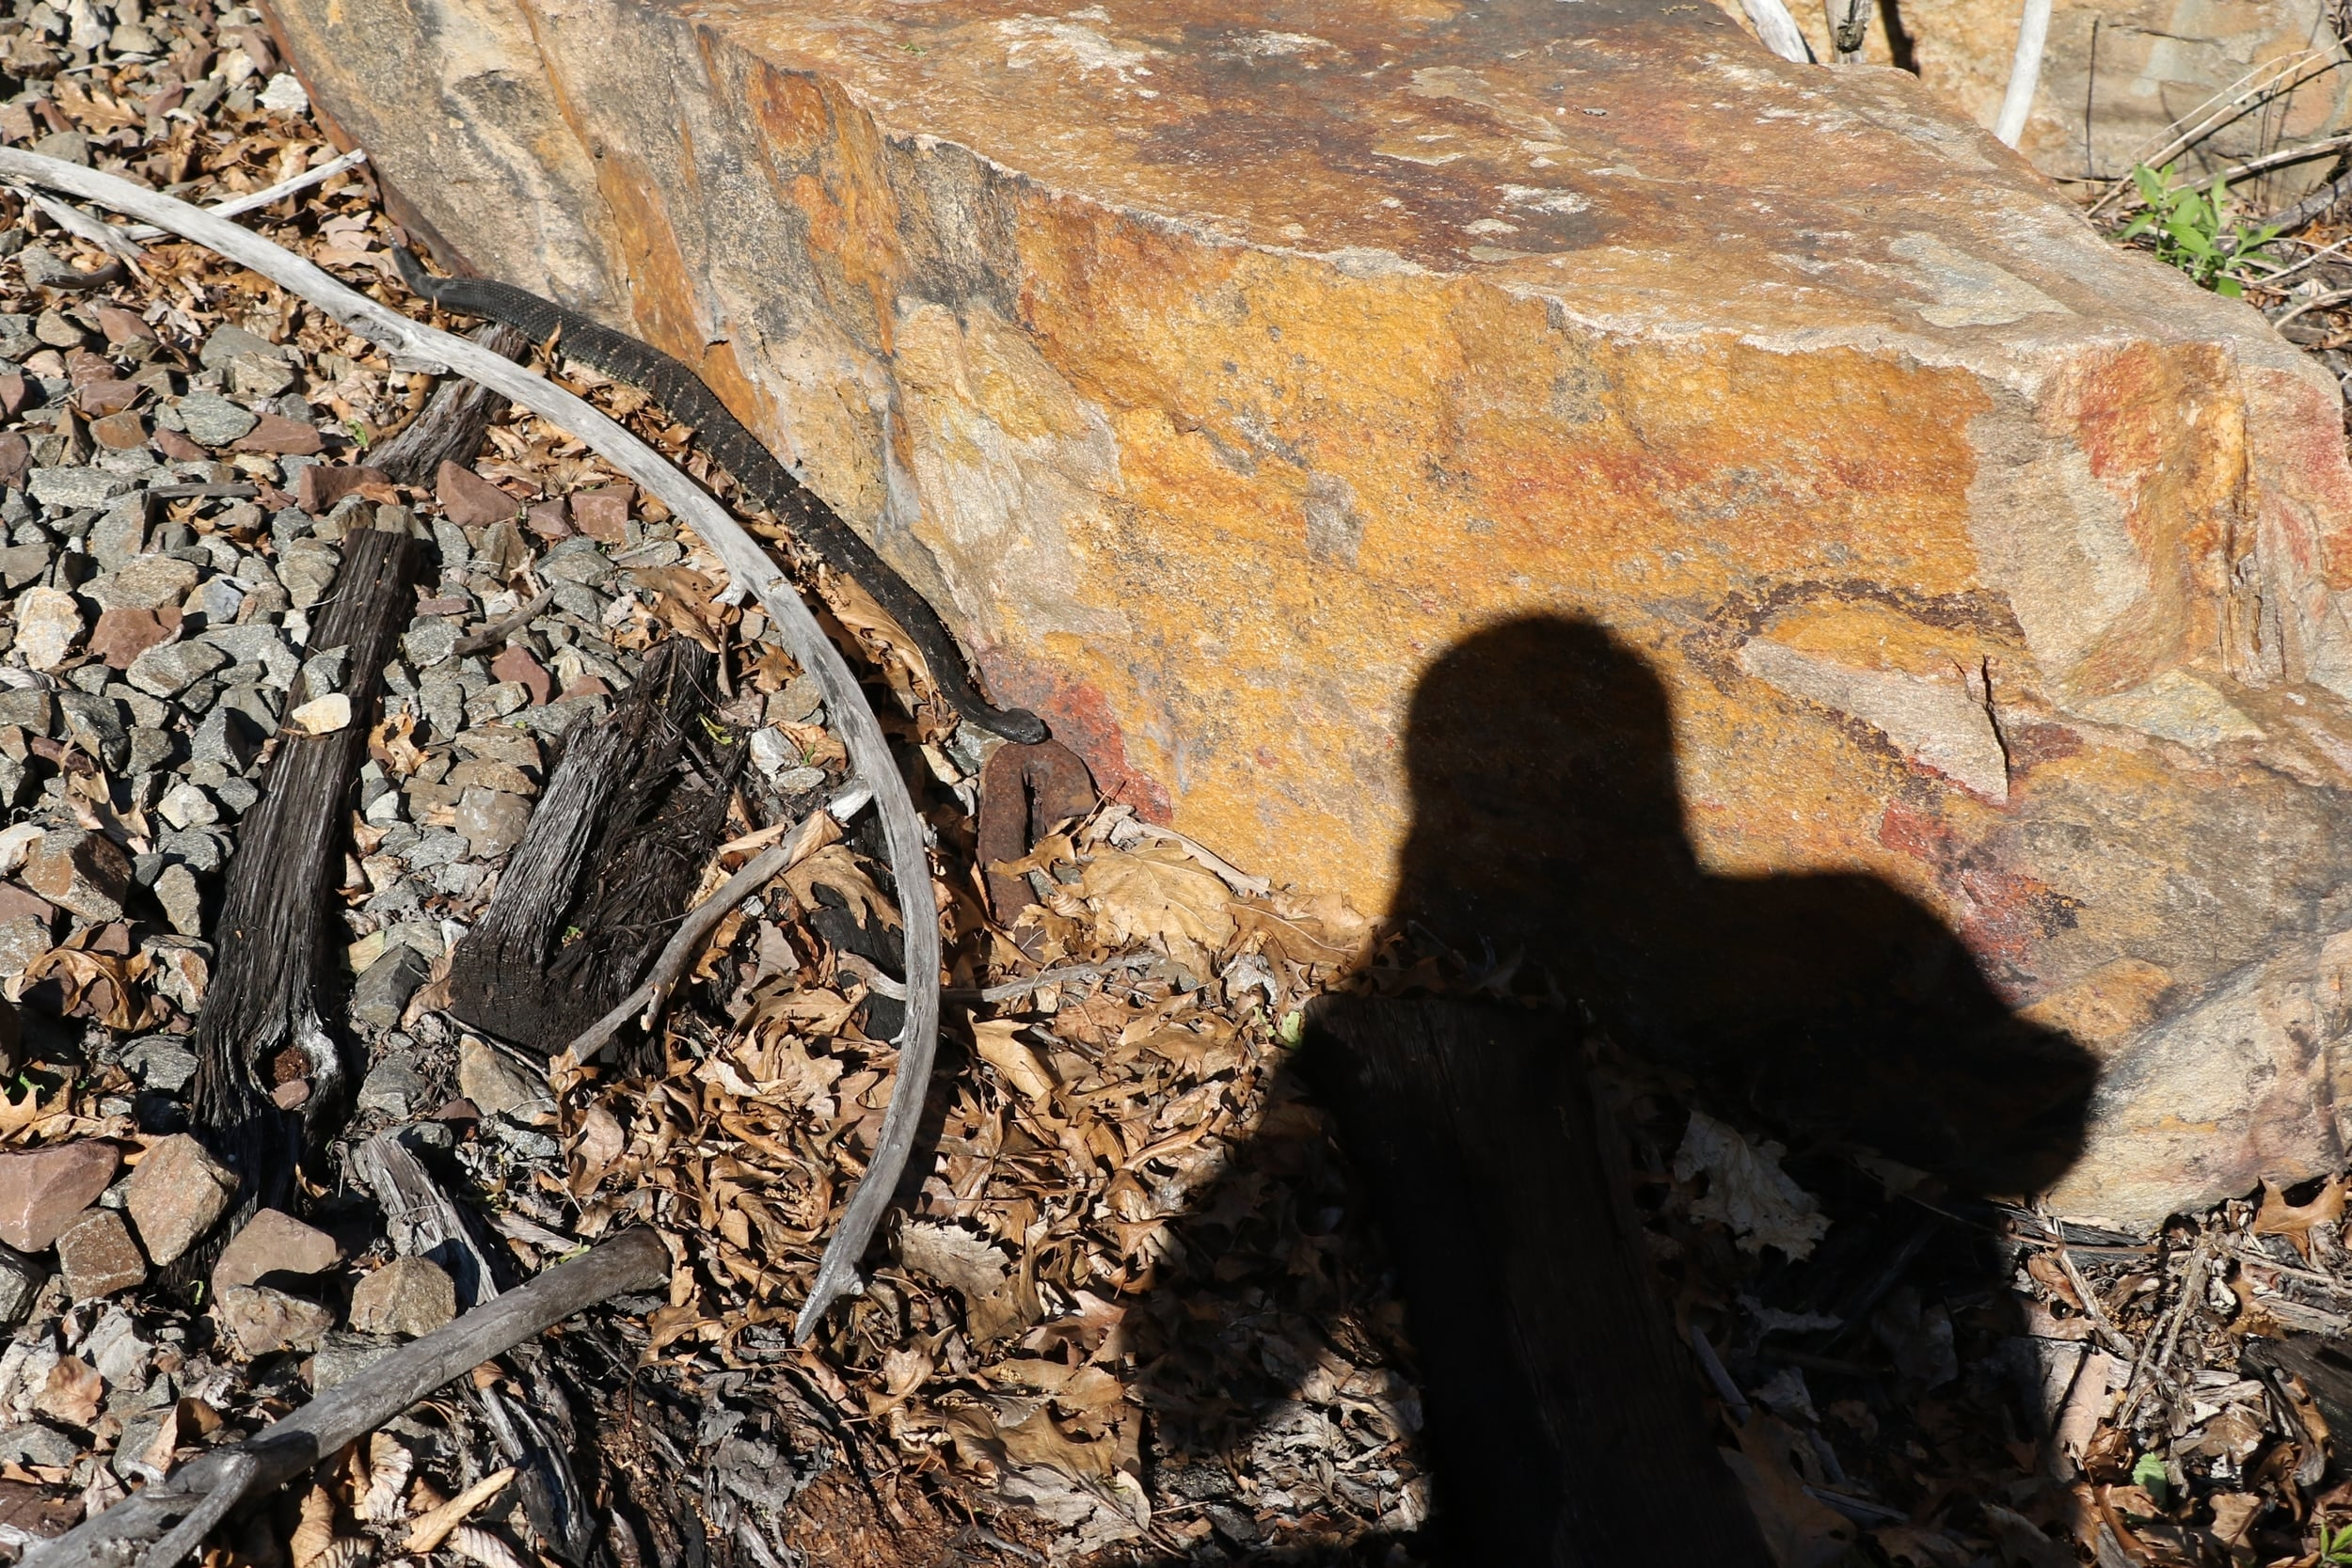 Timber Rattlesnake - I took this self-portrait with a snake we found in the Poconos on a group trip.